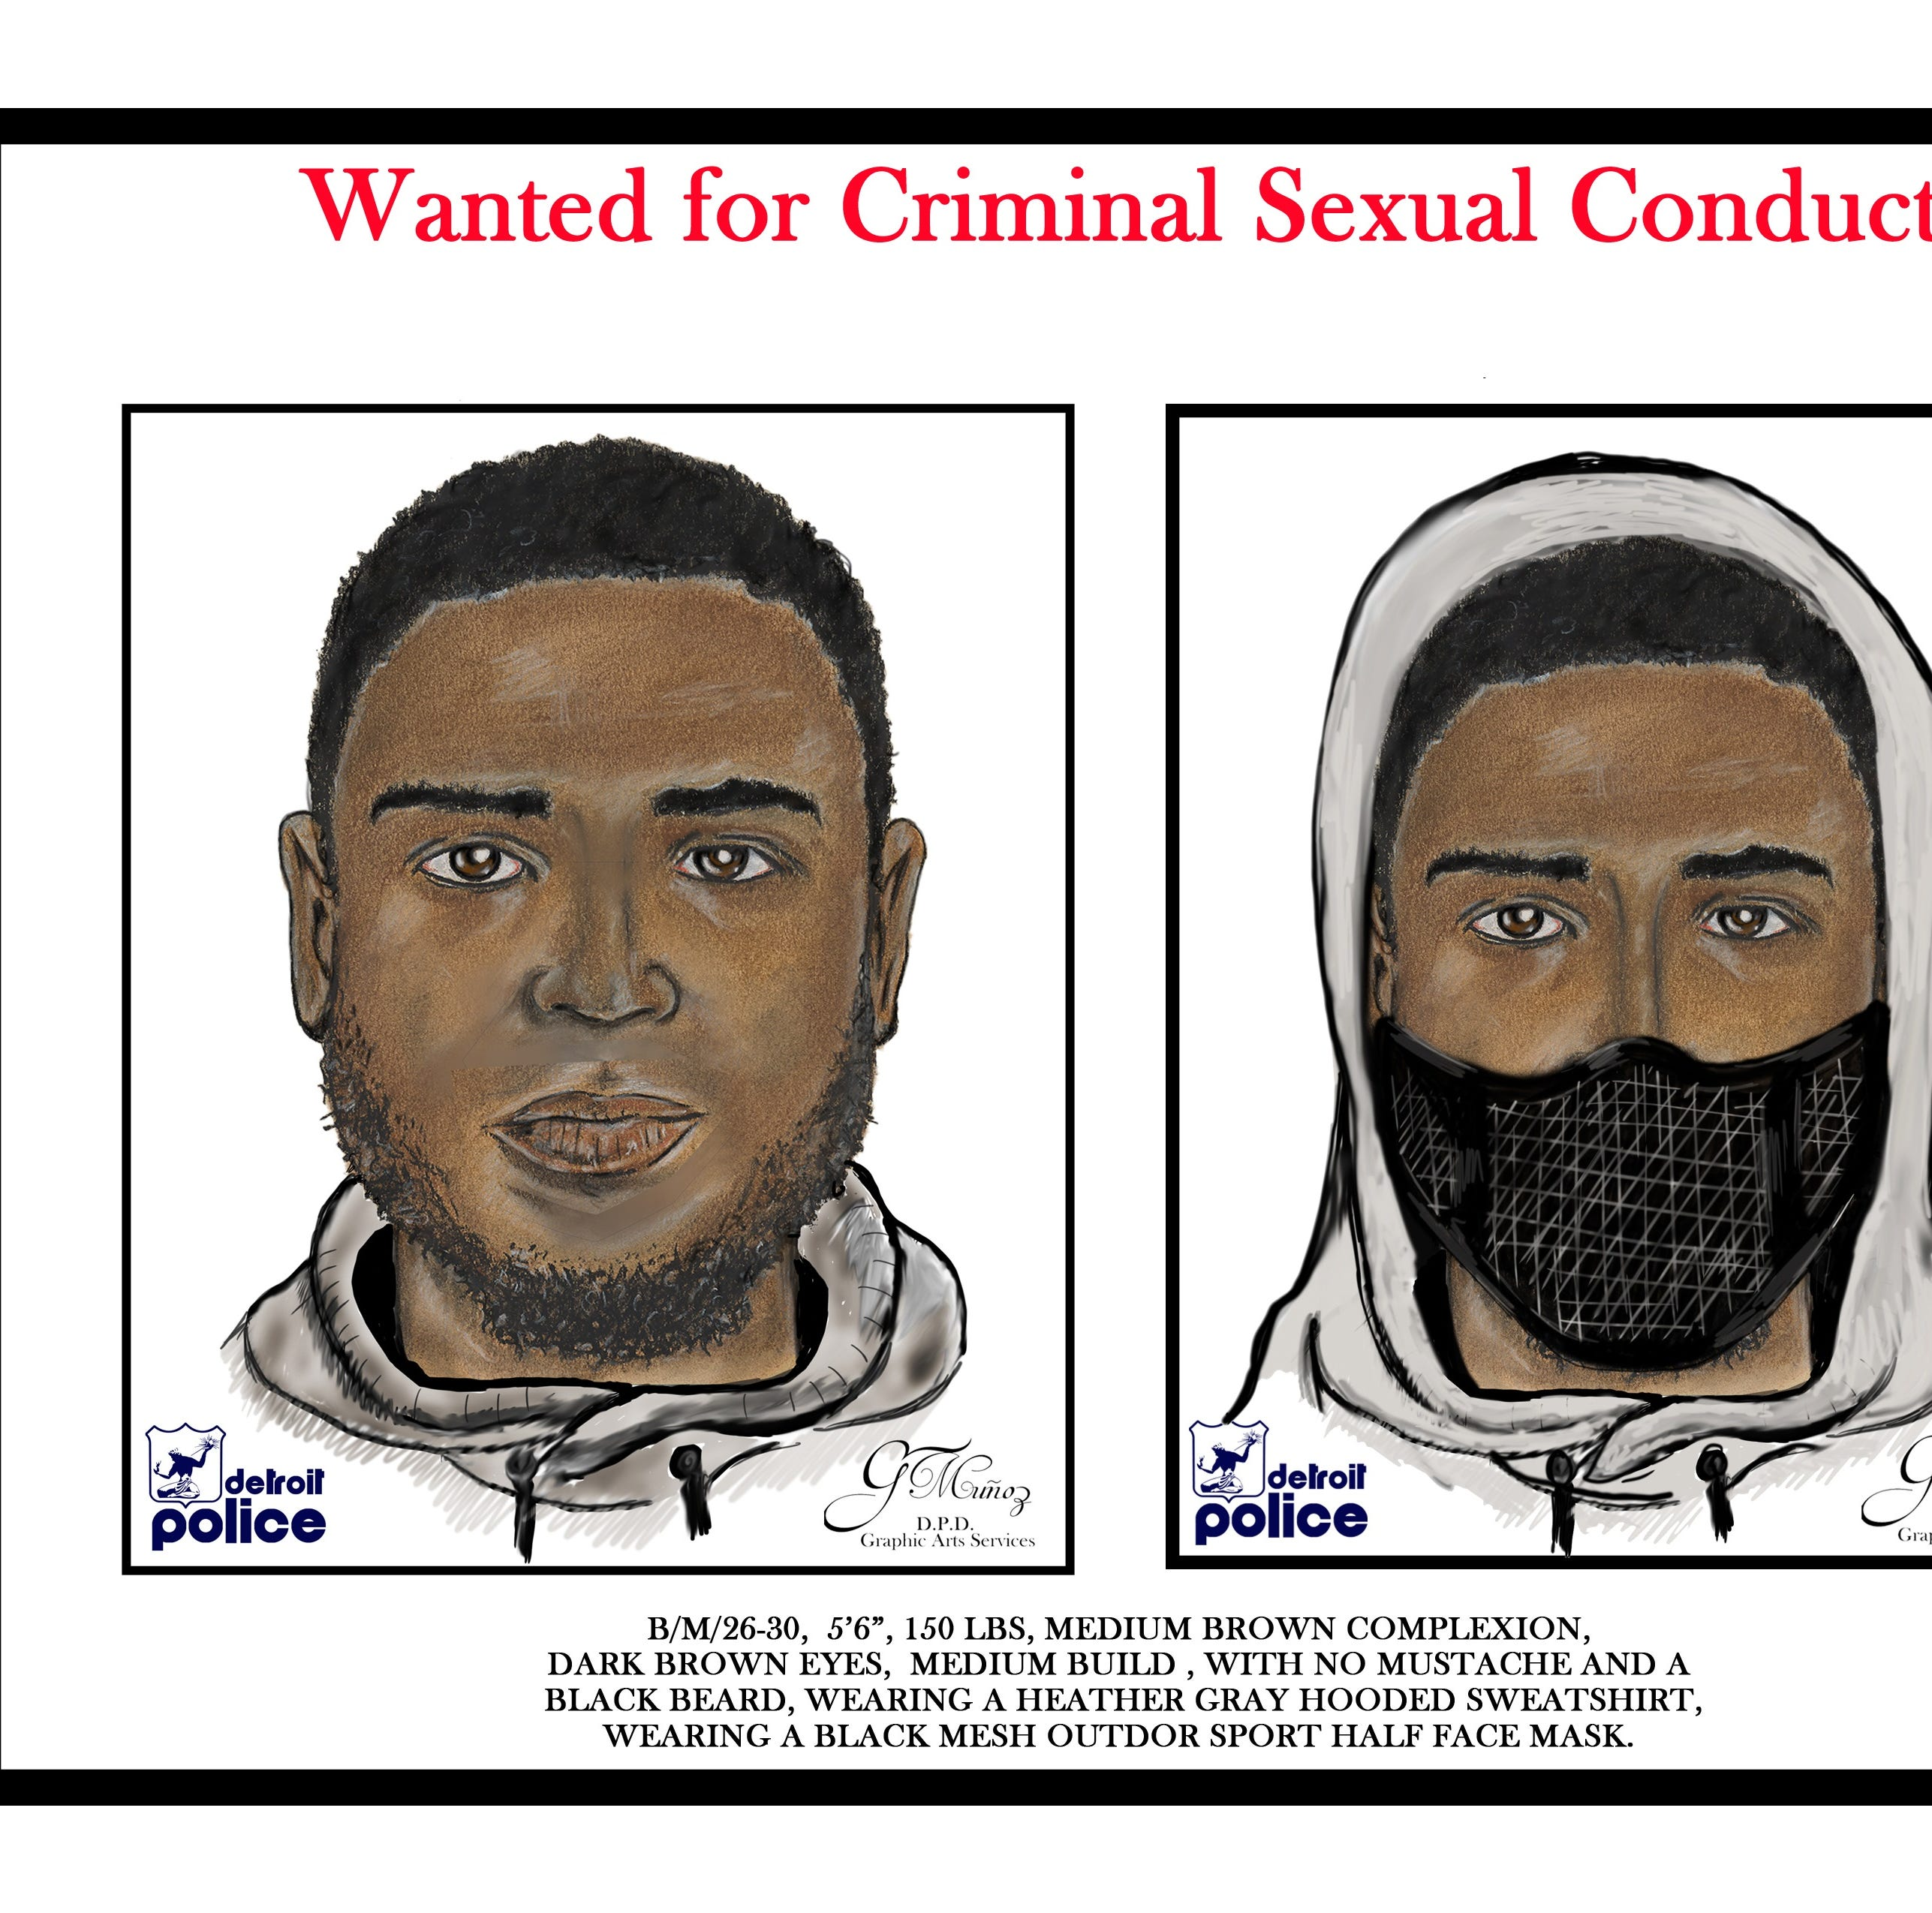 Detroit police looking for serial rapist, suspect sketch released